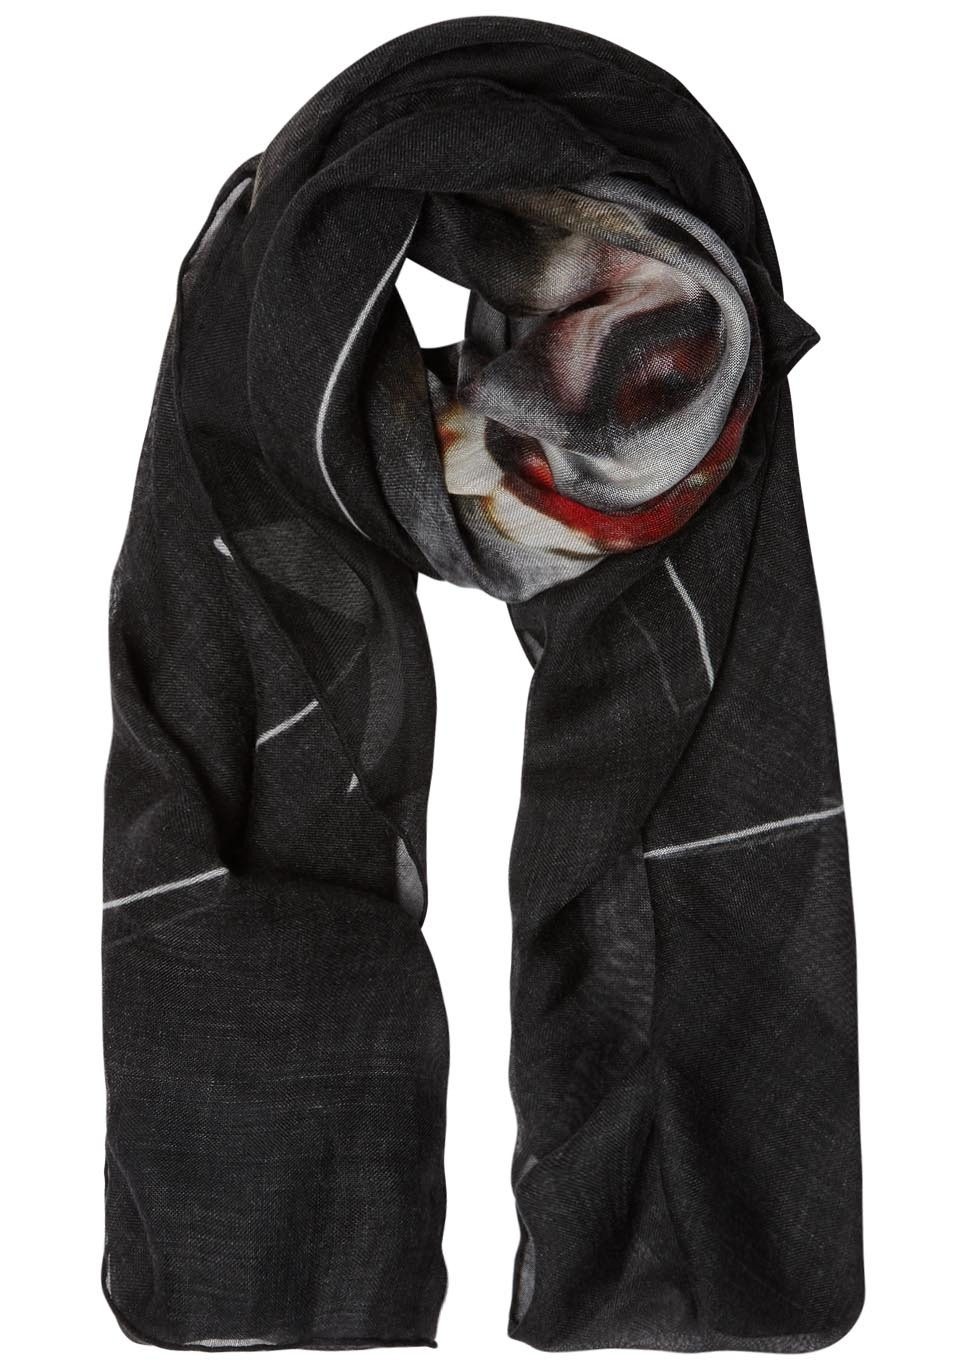 Black Monkey Print Cashmere Blend Scarf - predominant colour: black; occasions: casual; type of pattern: standard; style: regular; size: standard; pattern: patterned/print; material: cashmere; season: s/s 2016; wardrobe: highlight